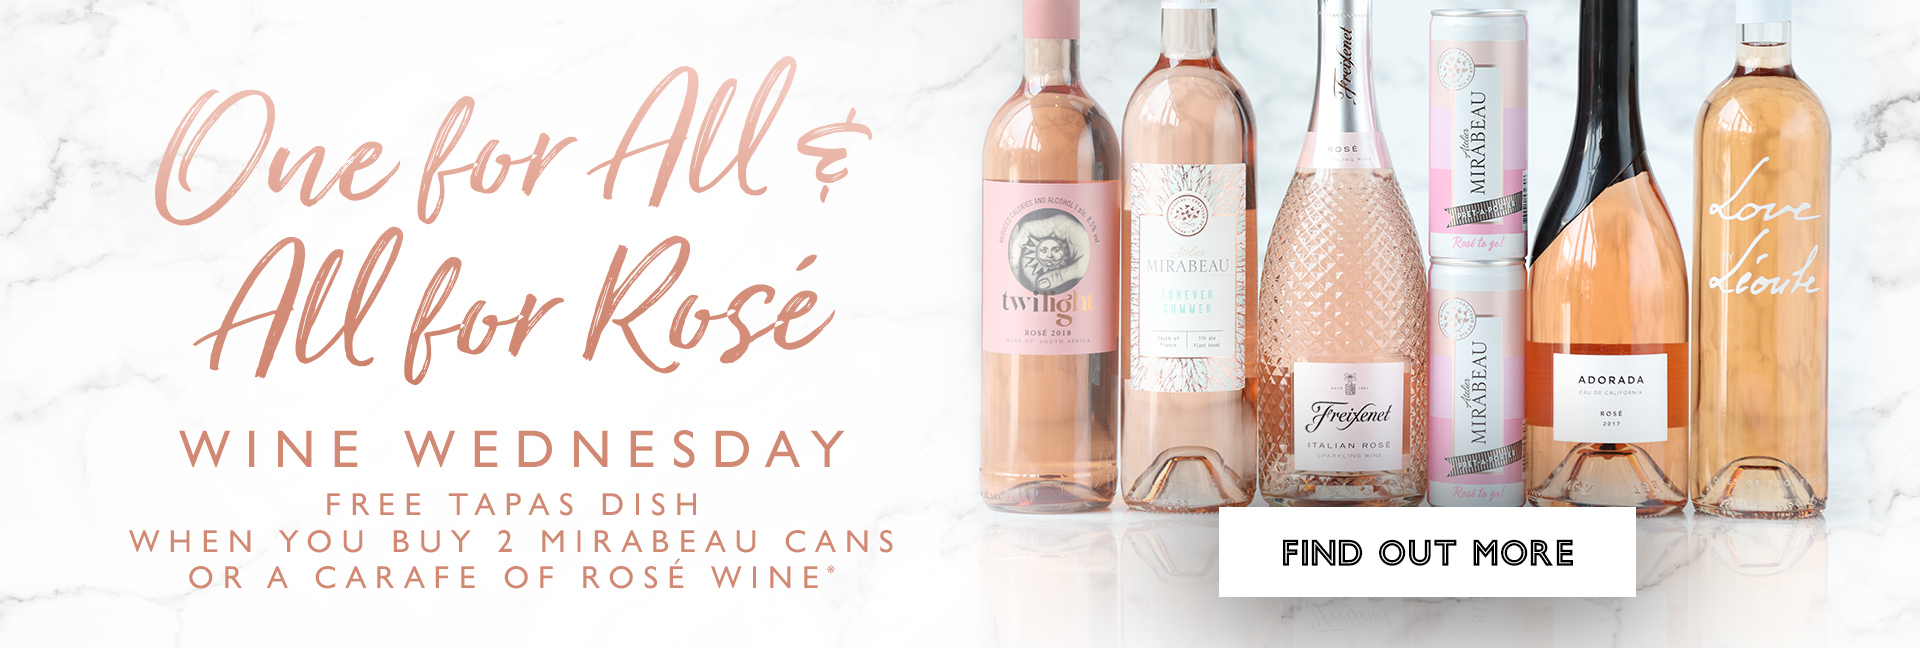 Wine Wednesdays at All Bar One Picton Place